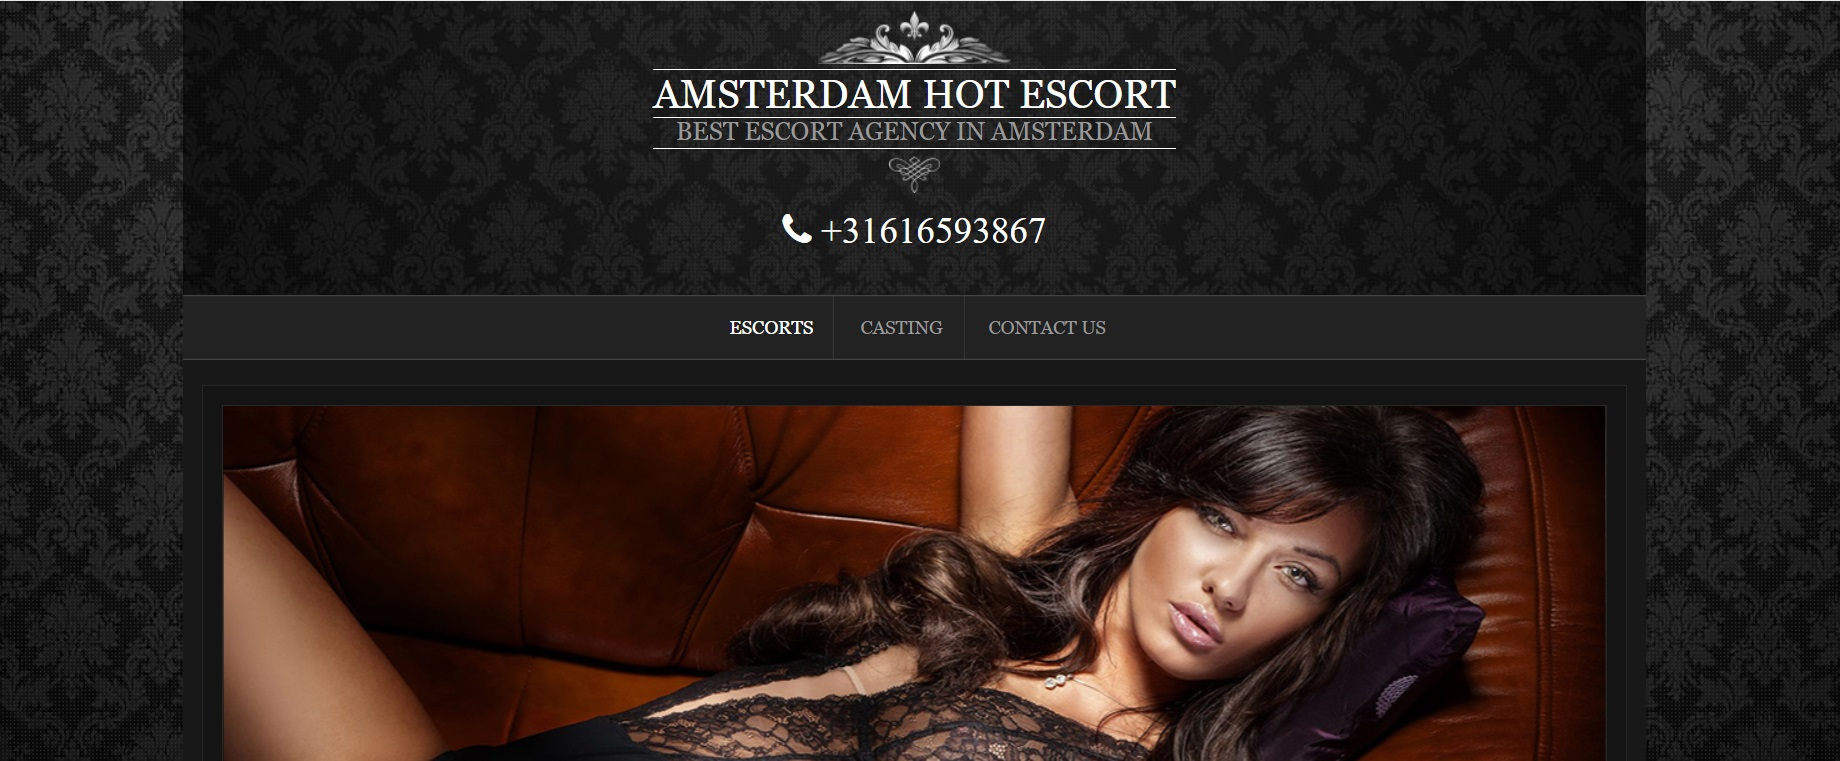 amsterdam hot escort